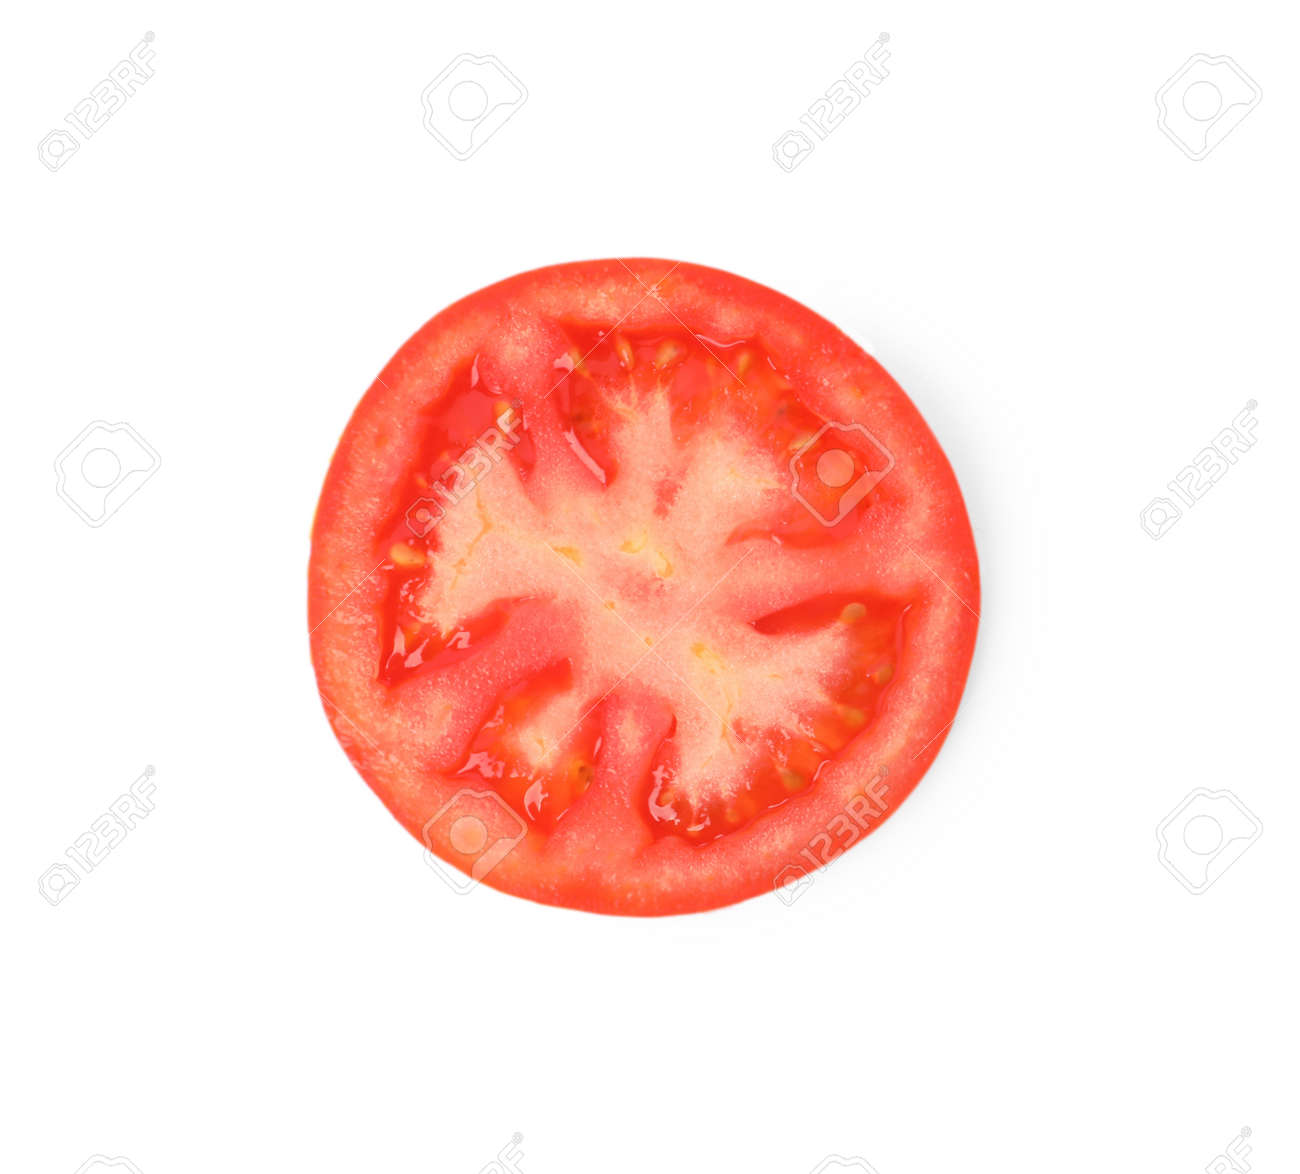 Slice of ripe tomato isolated on white, top view - 168463418